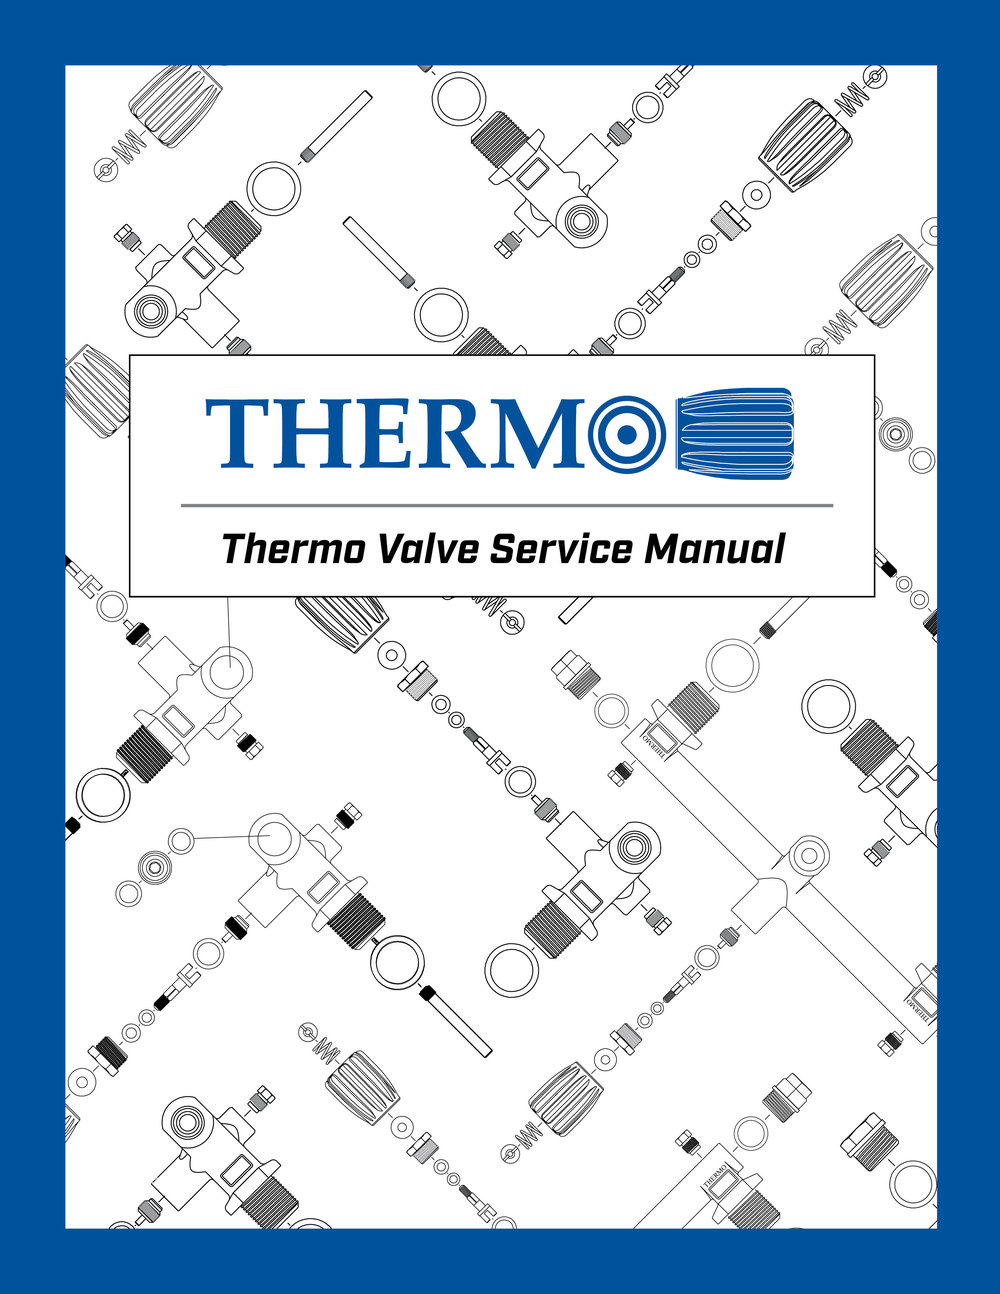 Thermo Valves Service Manual - Updated - June 7, 2018